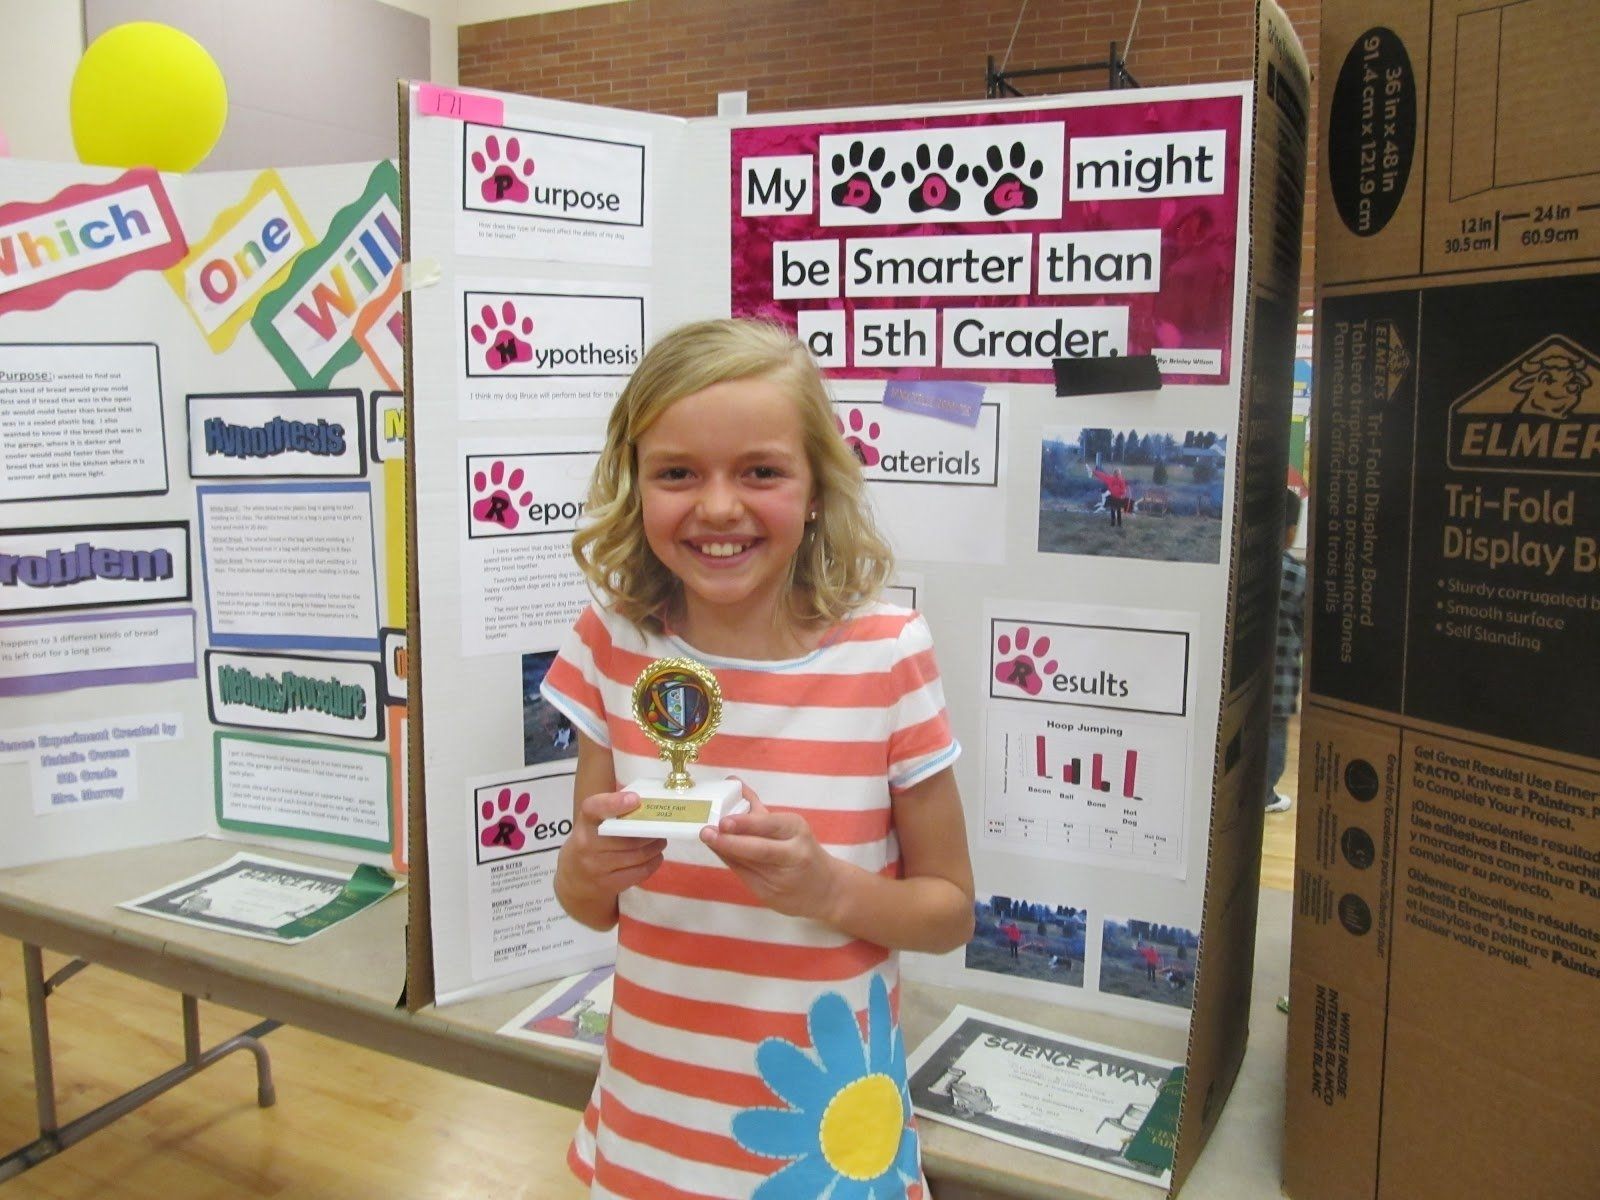 10 Elegant Science Fair Ideas For 5Th Graders the science of my life updated declo science fair with newspaper 39